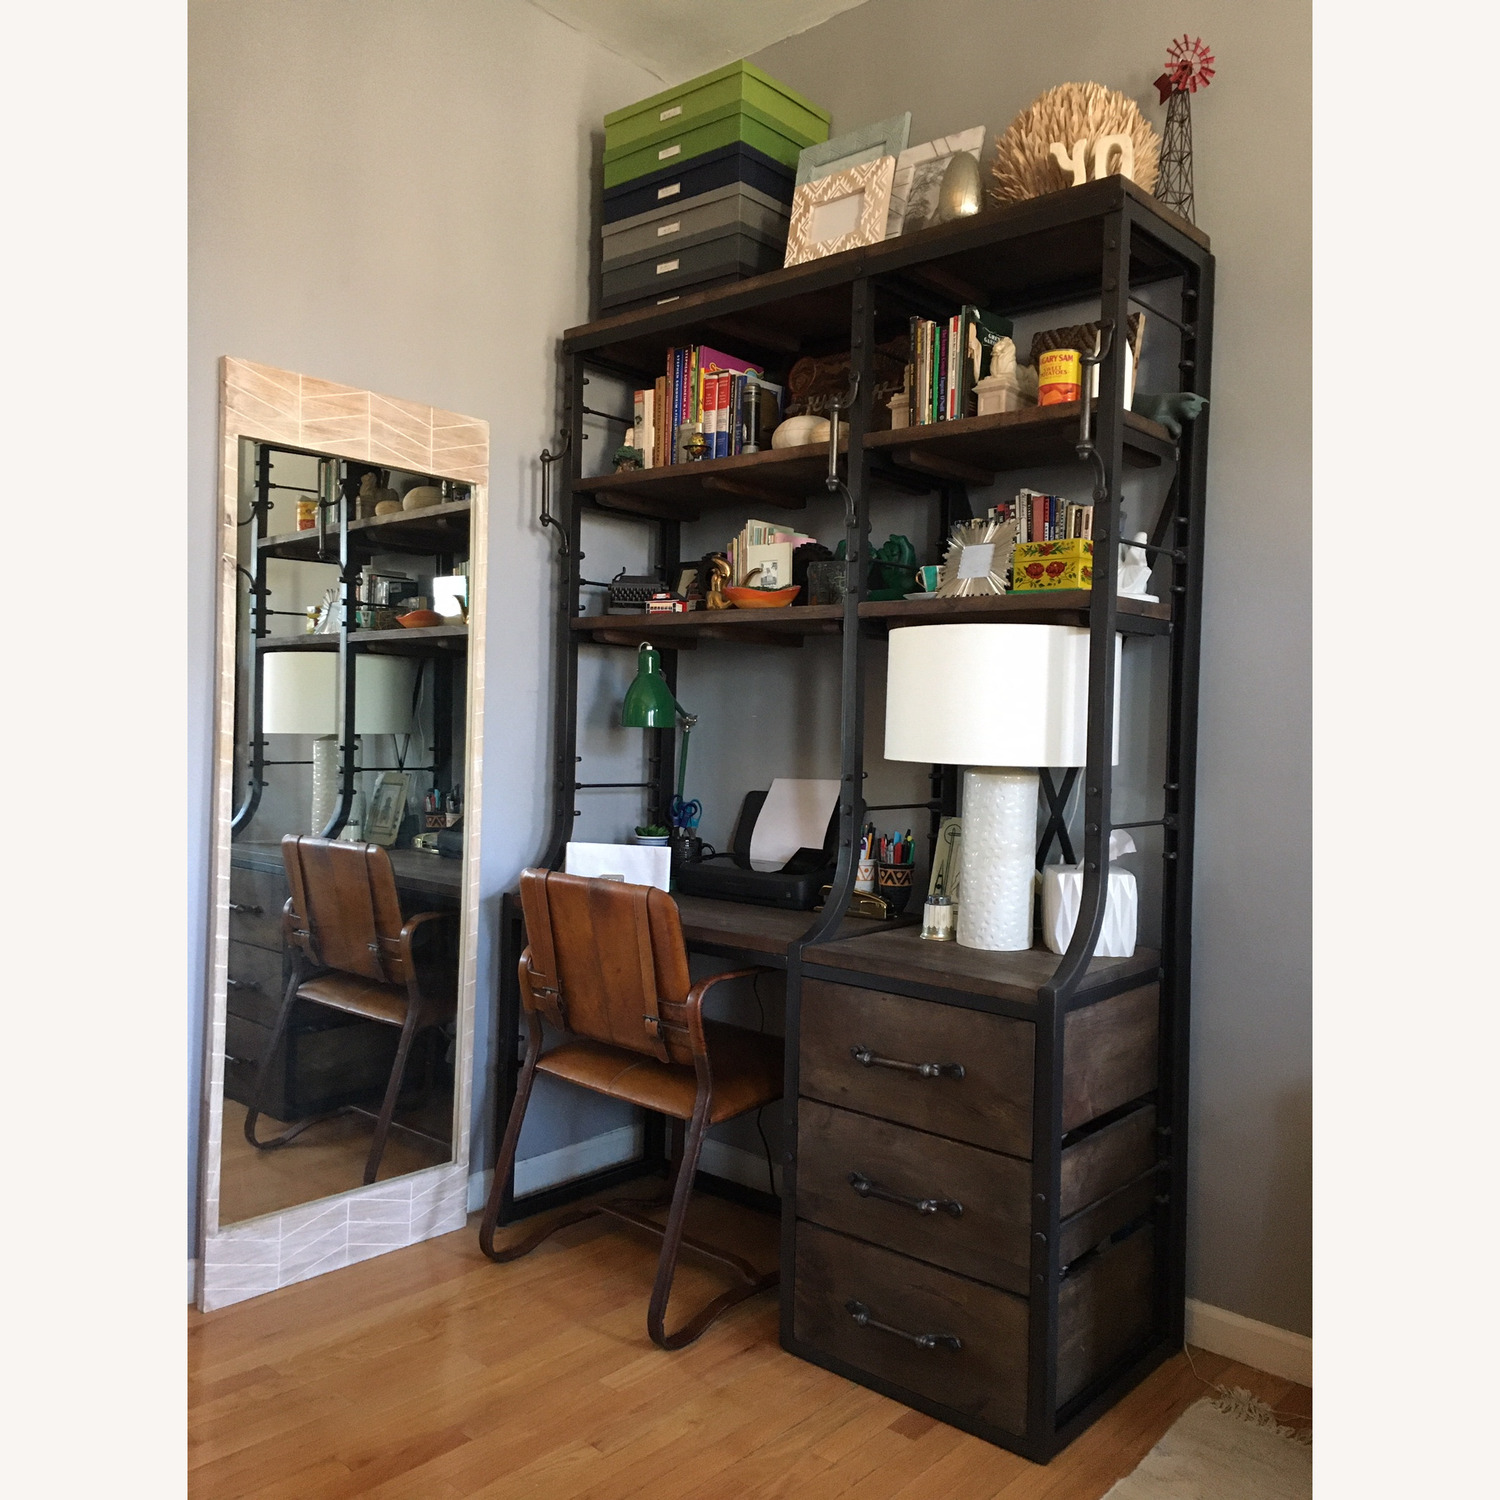 Restoration Hardware French Library Desk with Drawers - image-1